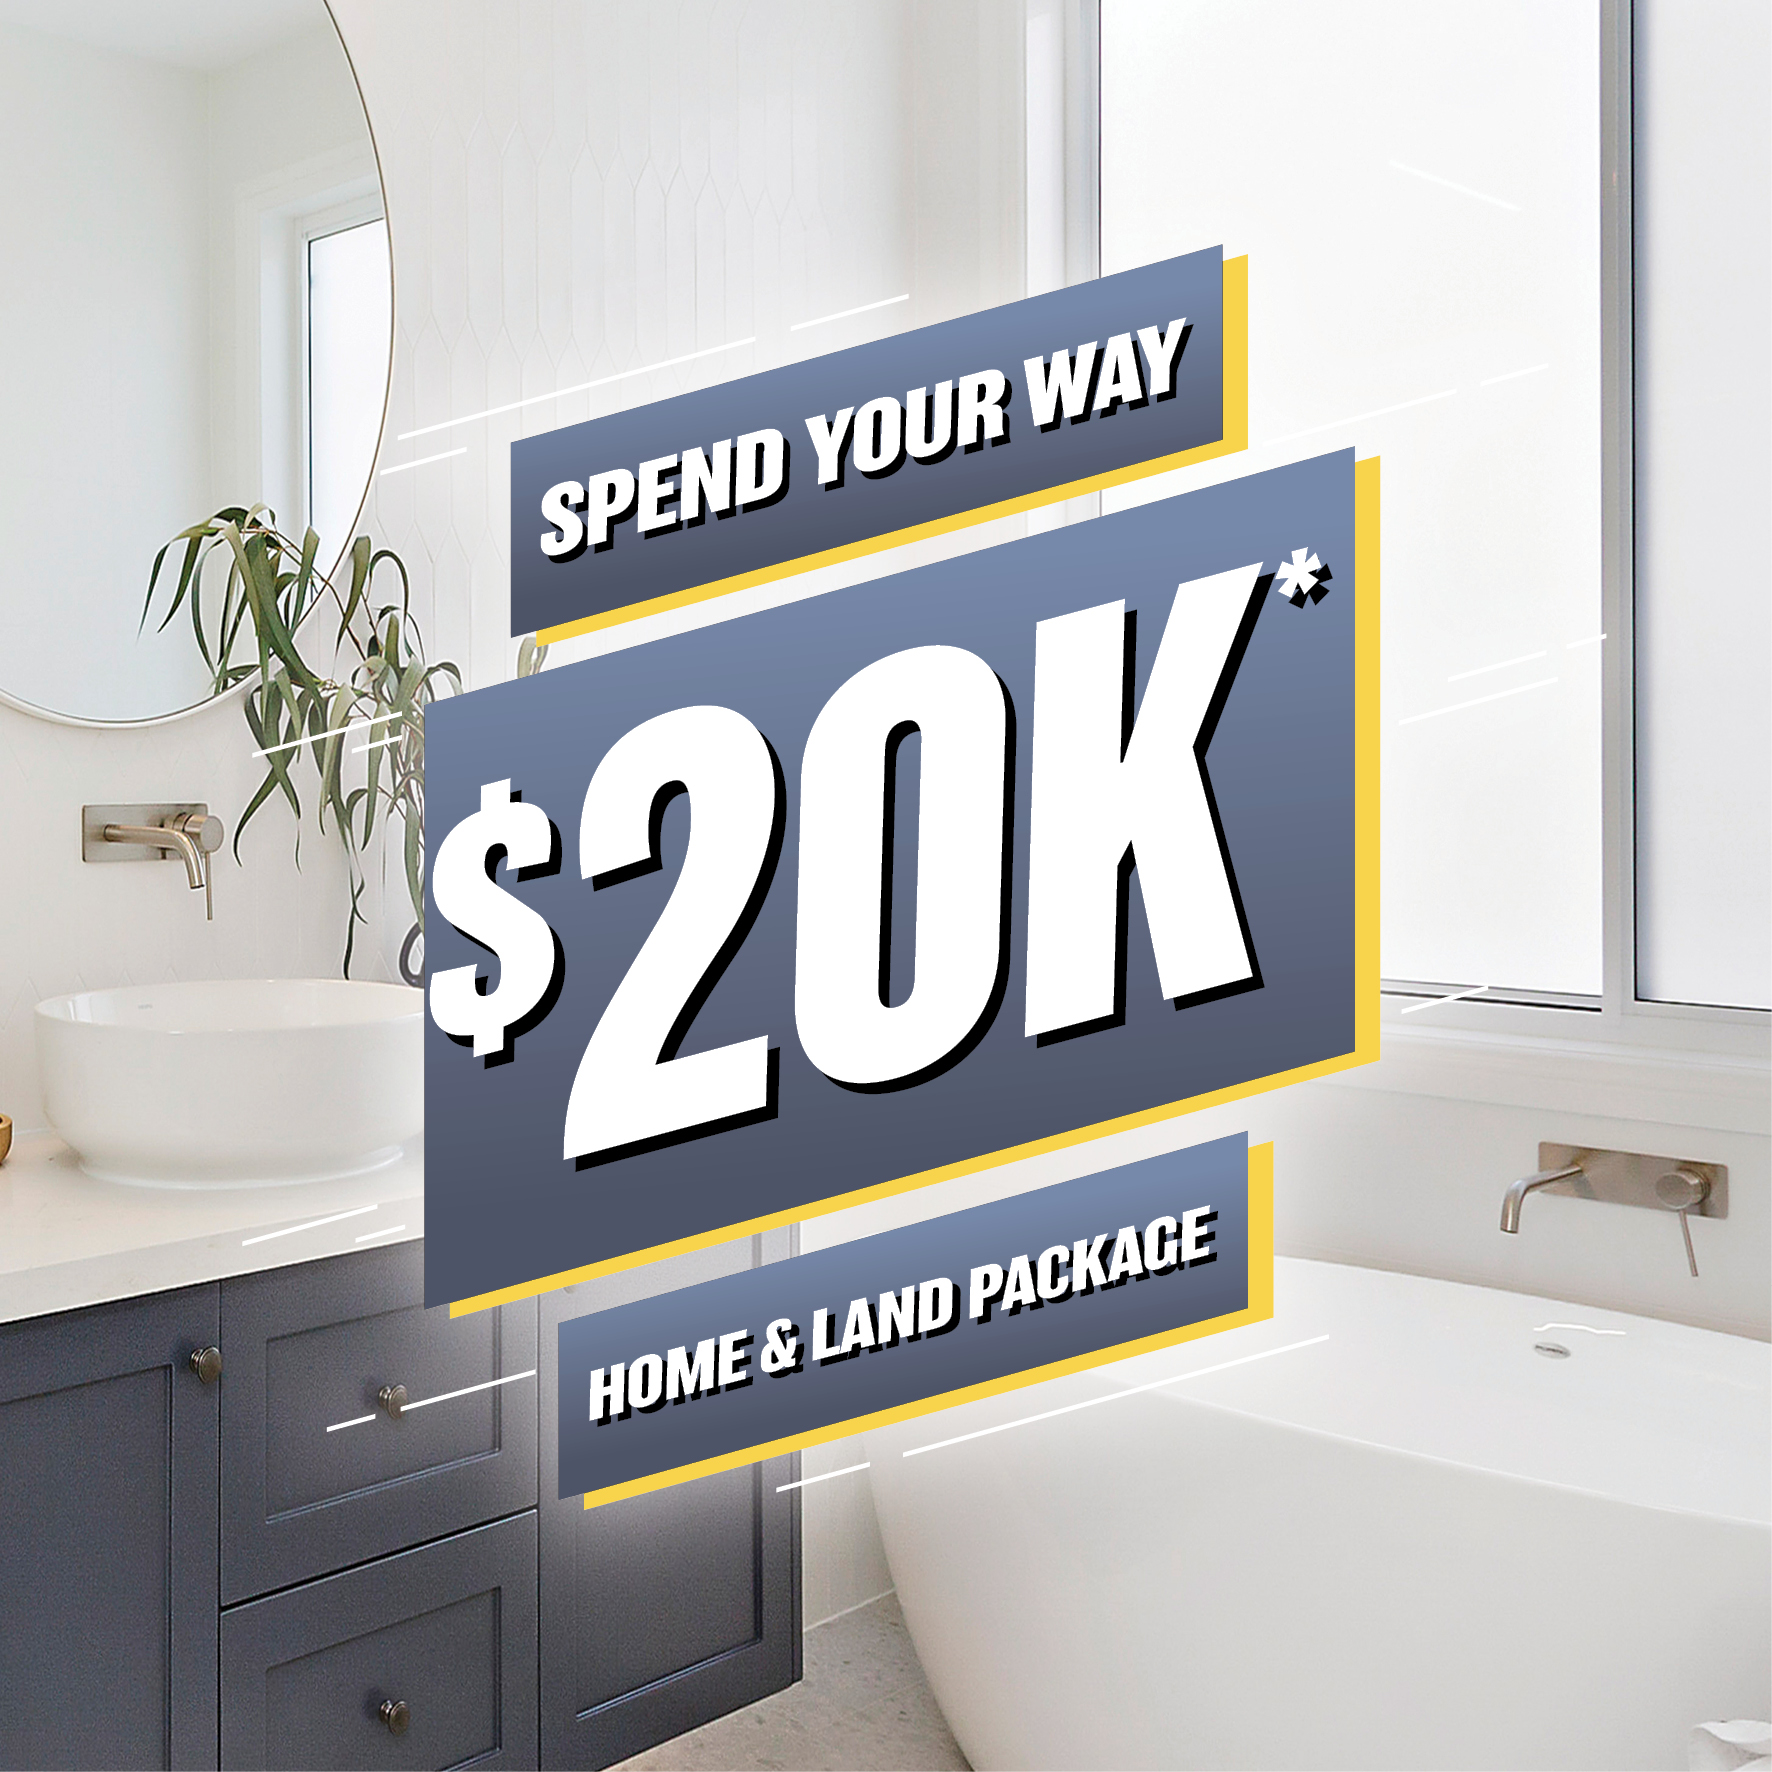 WEB HL Spend Your Way Square Promo Image